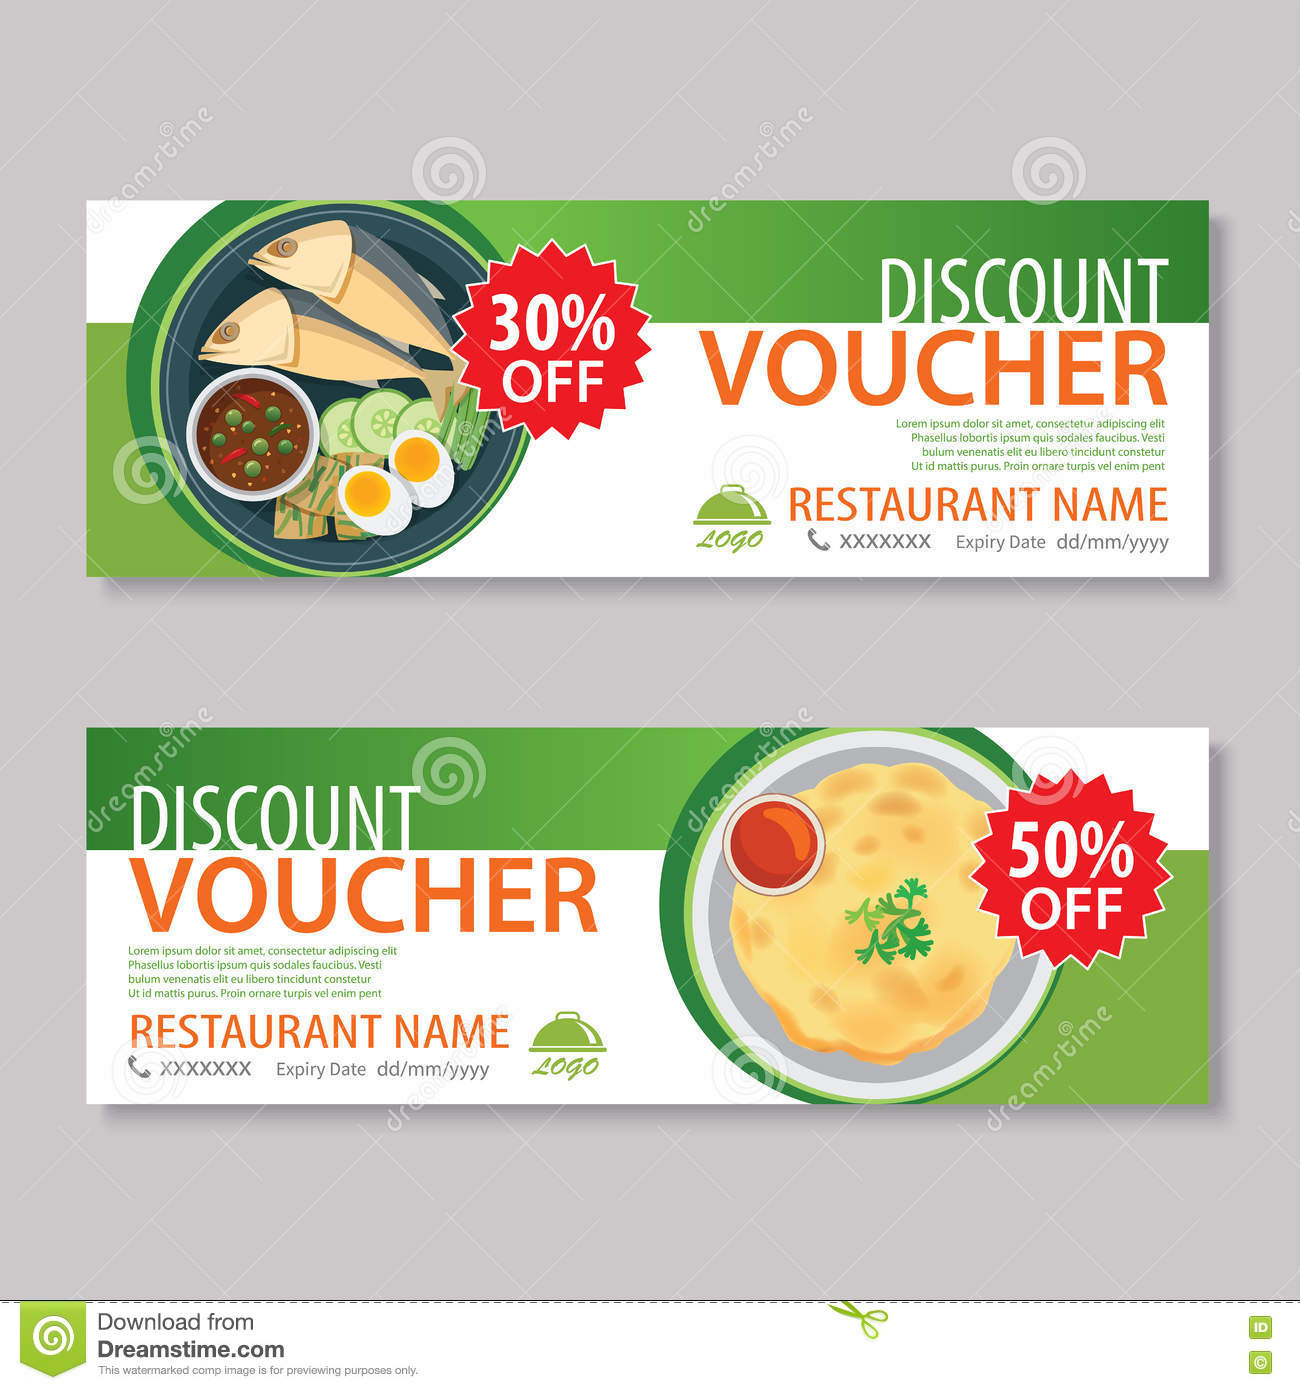 Wonderful Royalty Free Vector. Download Discount Voucher Template With Thai Food ...